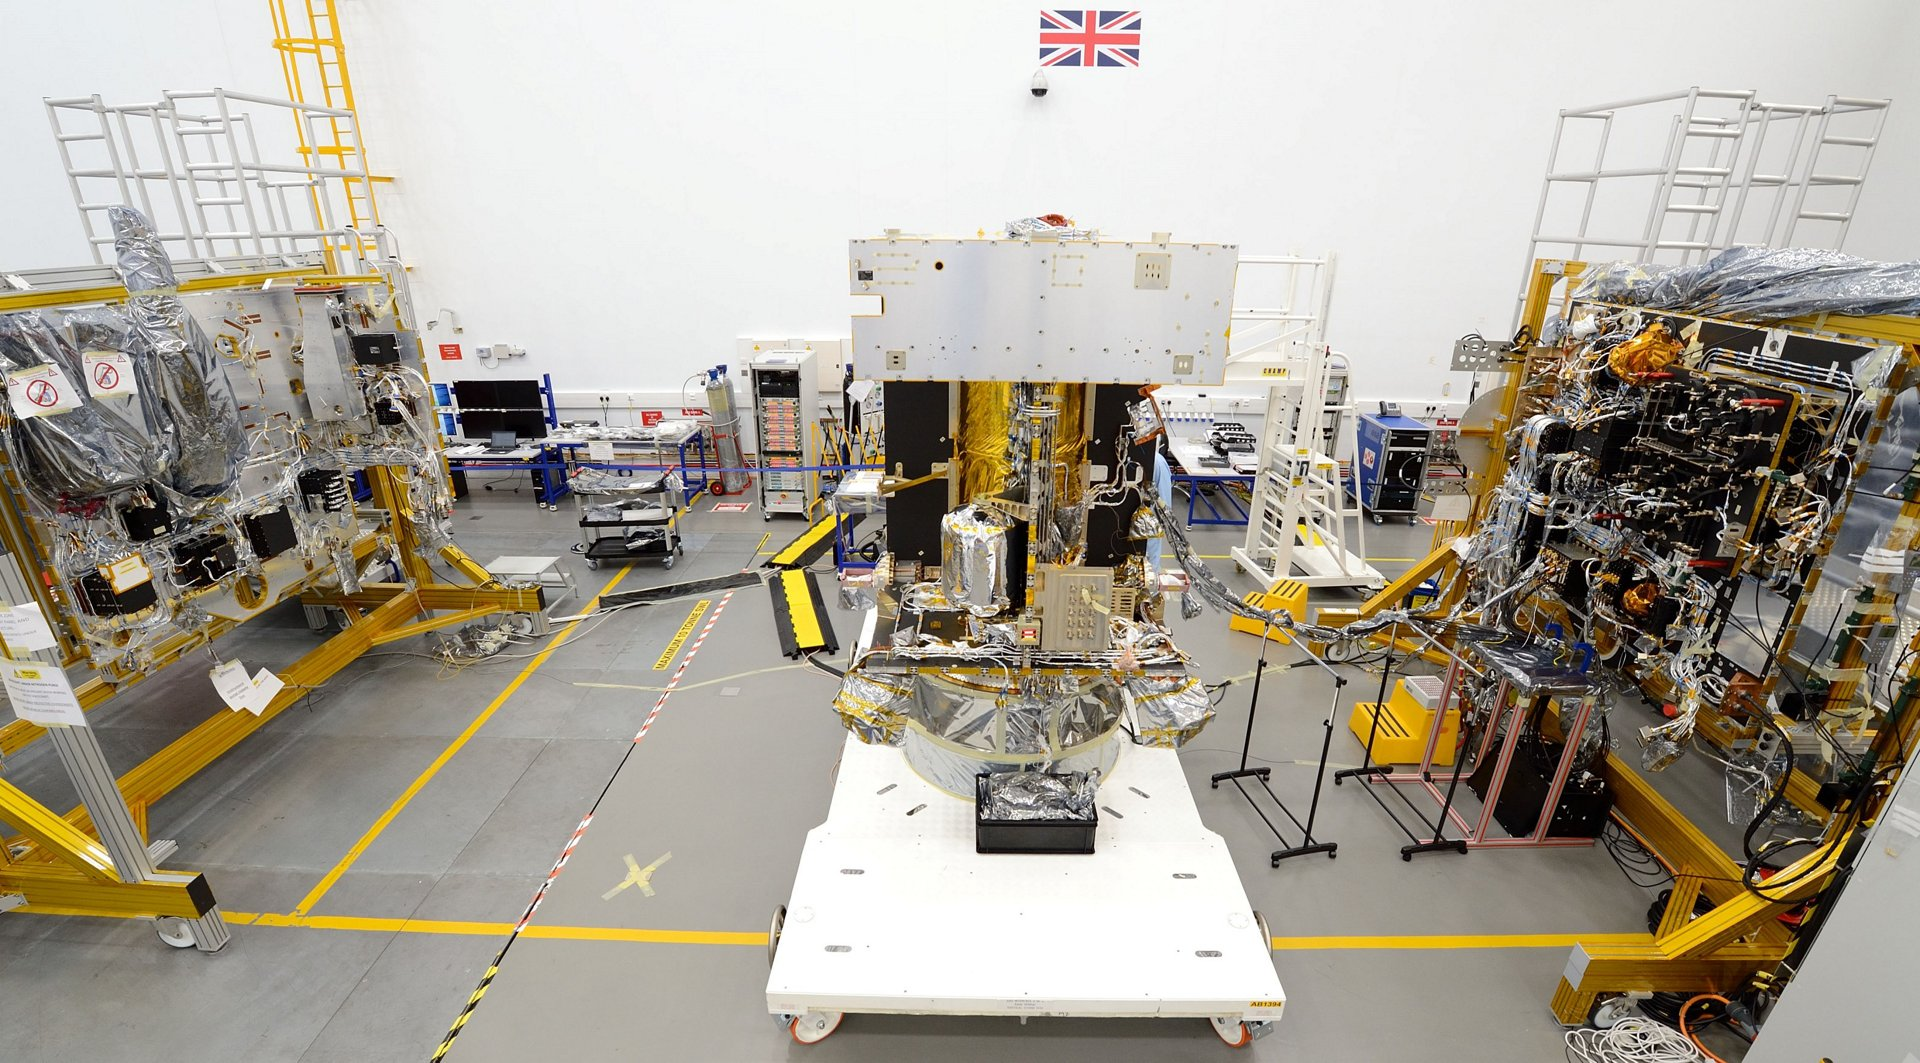 Airbus' Solar Orbiter in the final stages of integration in Stevenage, UK, and ready for full system electrical testing. By next eclipse it will be en route to its close-up encounter with our sun!